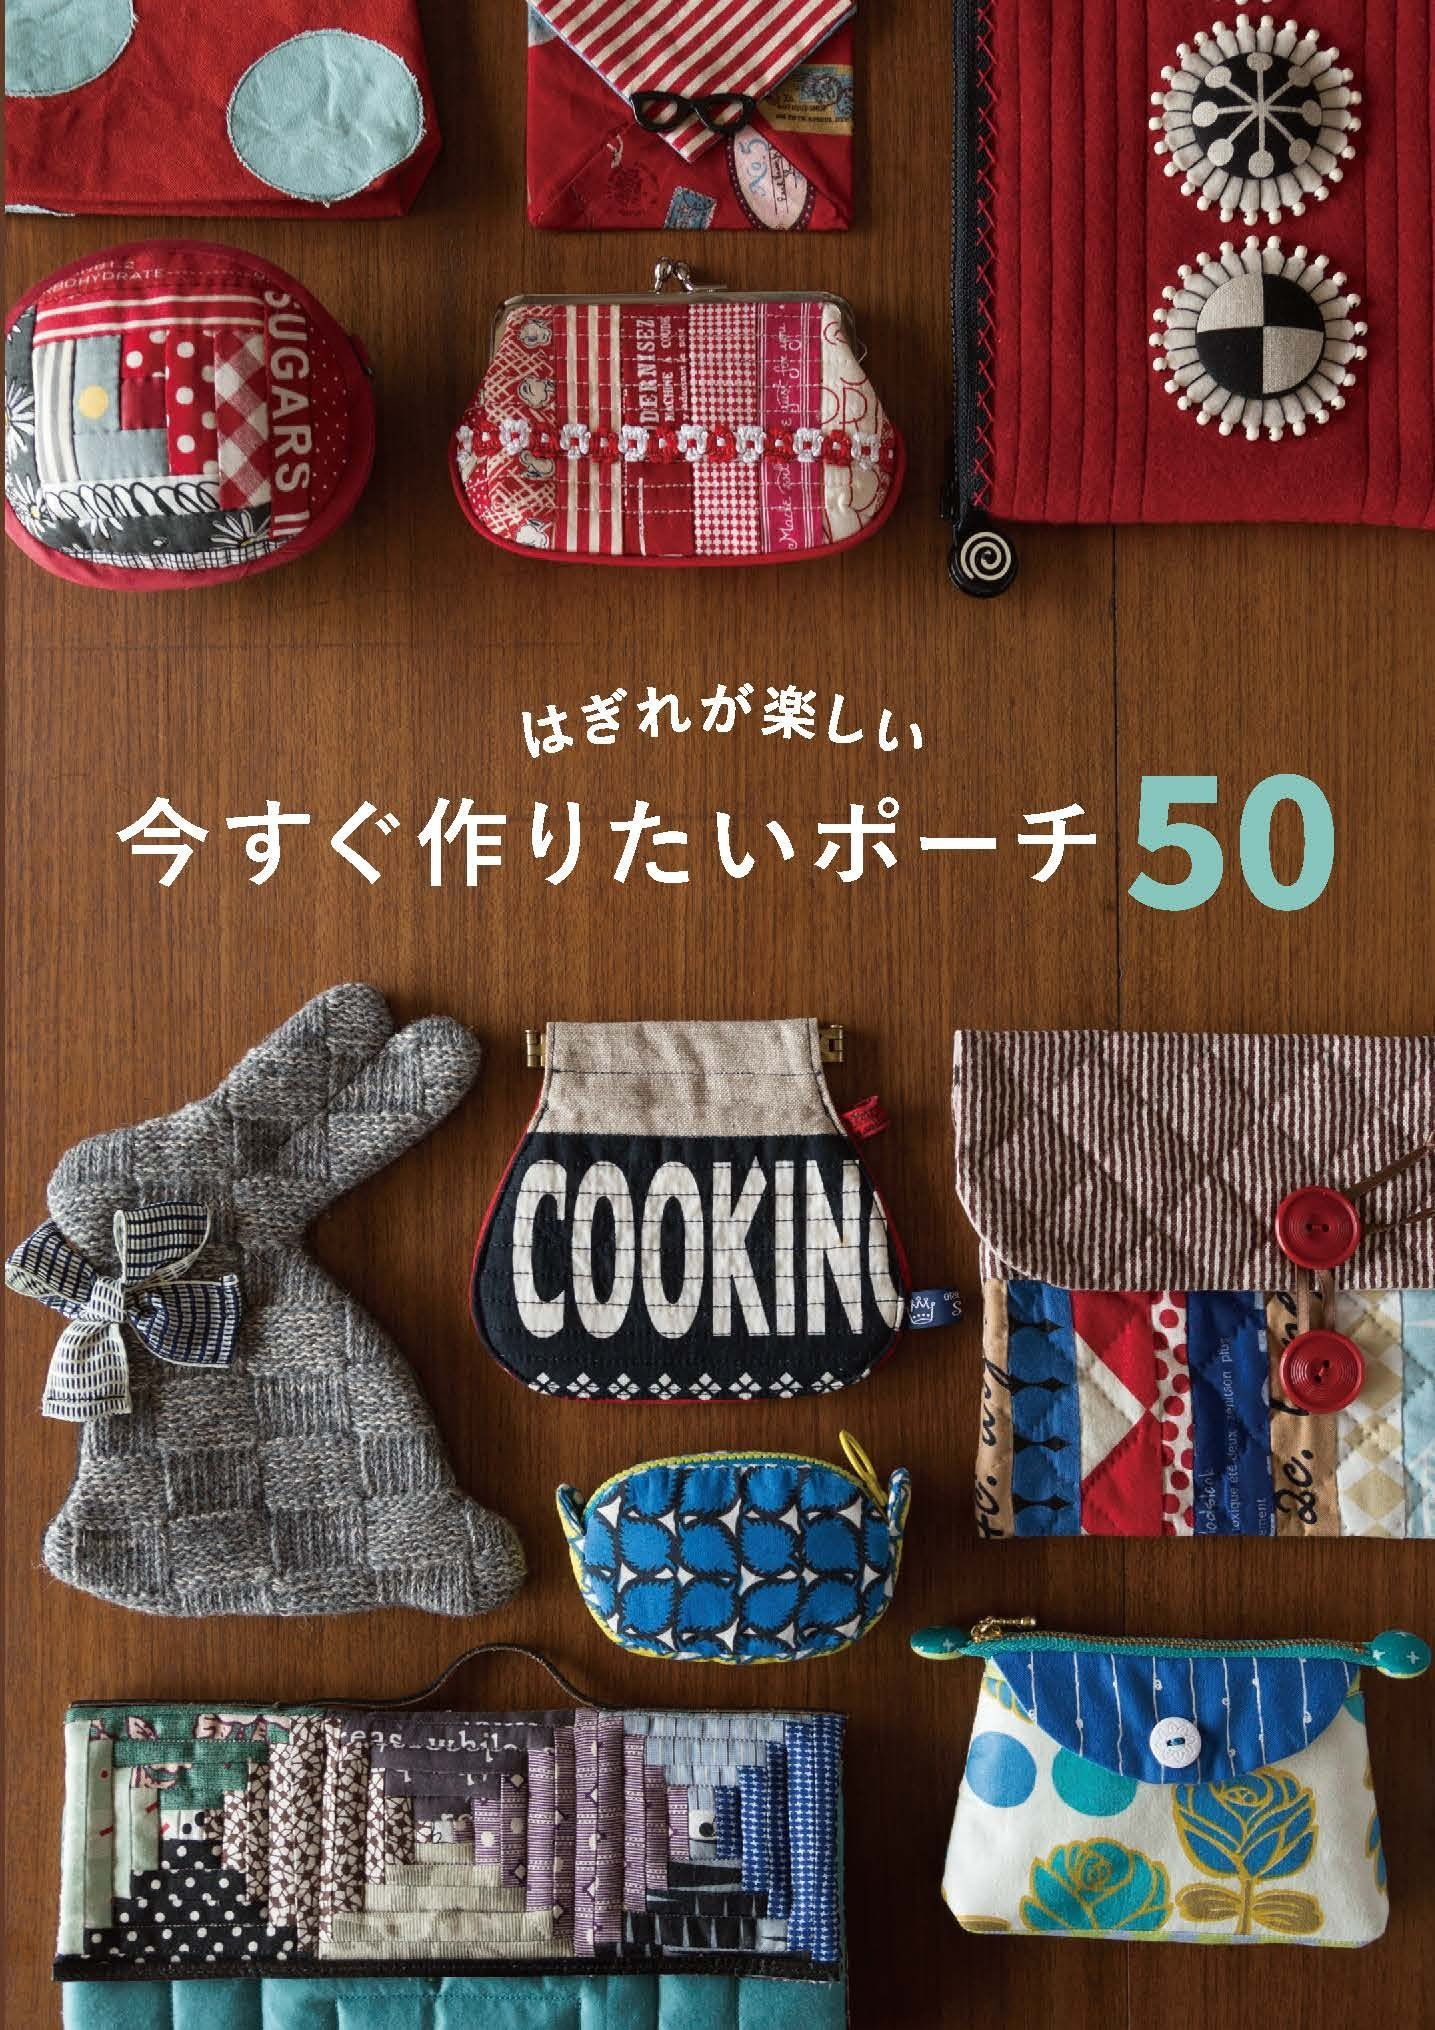 Pouch 50 you want to make right now